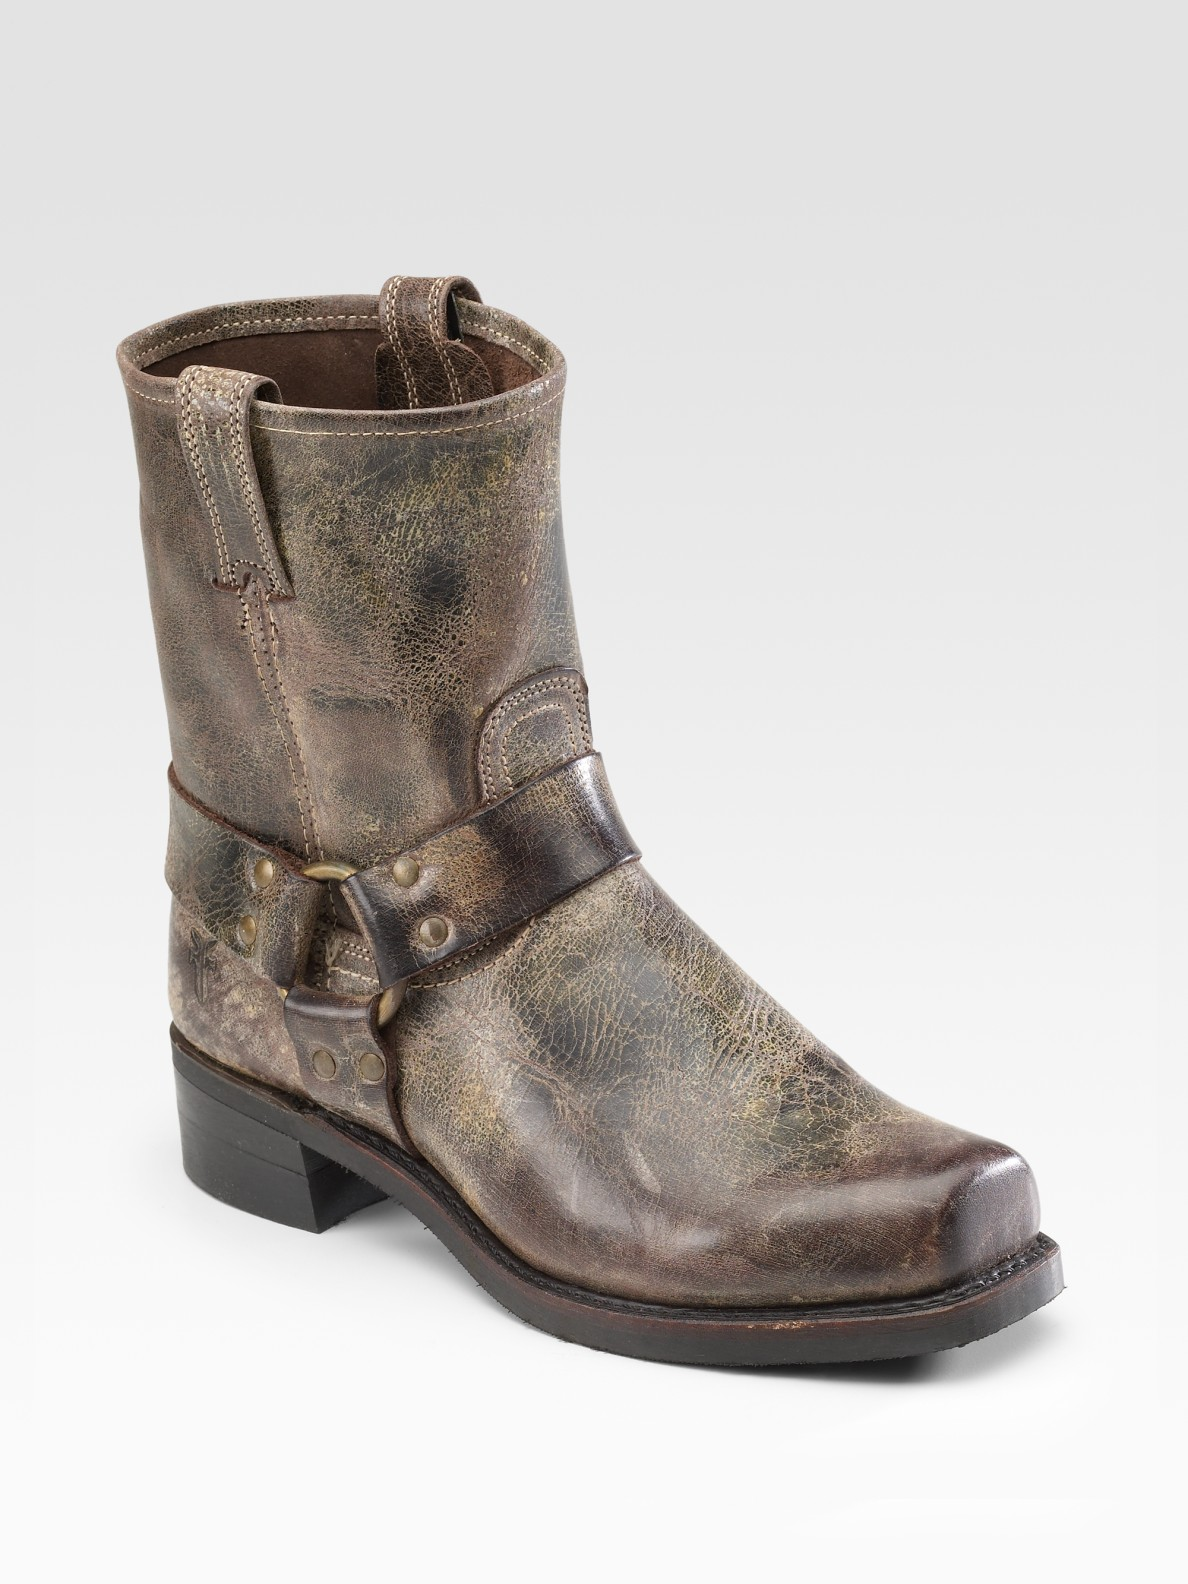 Lyst Frye Vintage Leather Harness Boots In Brown For Men